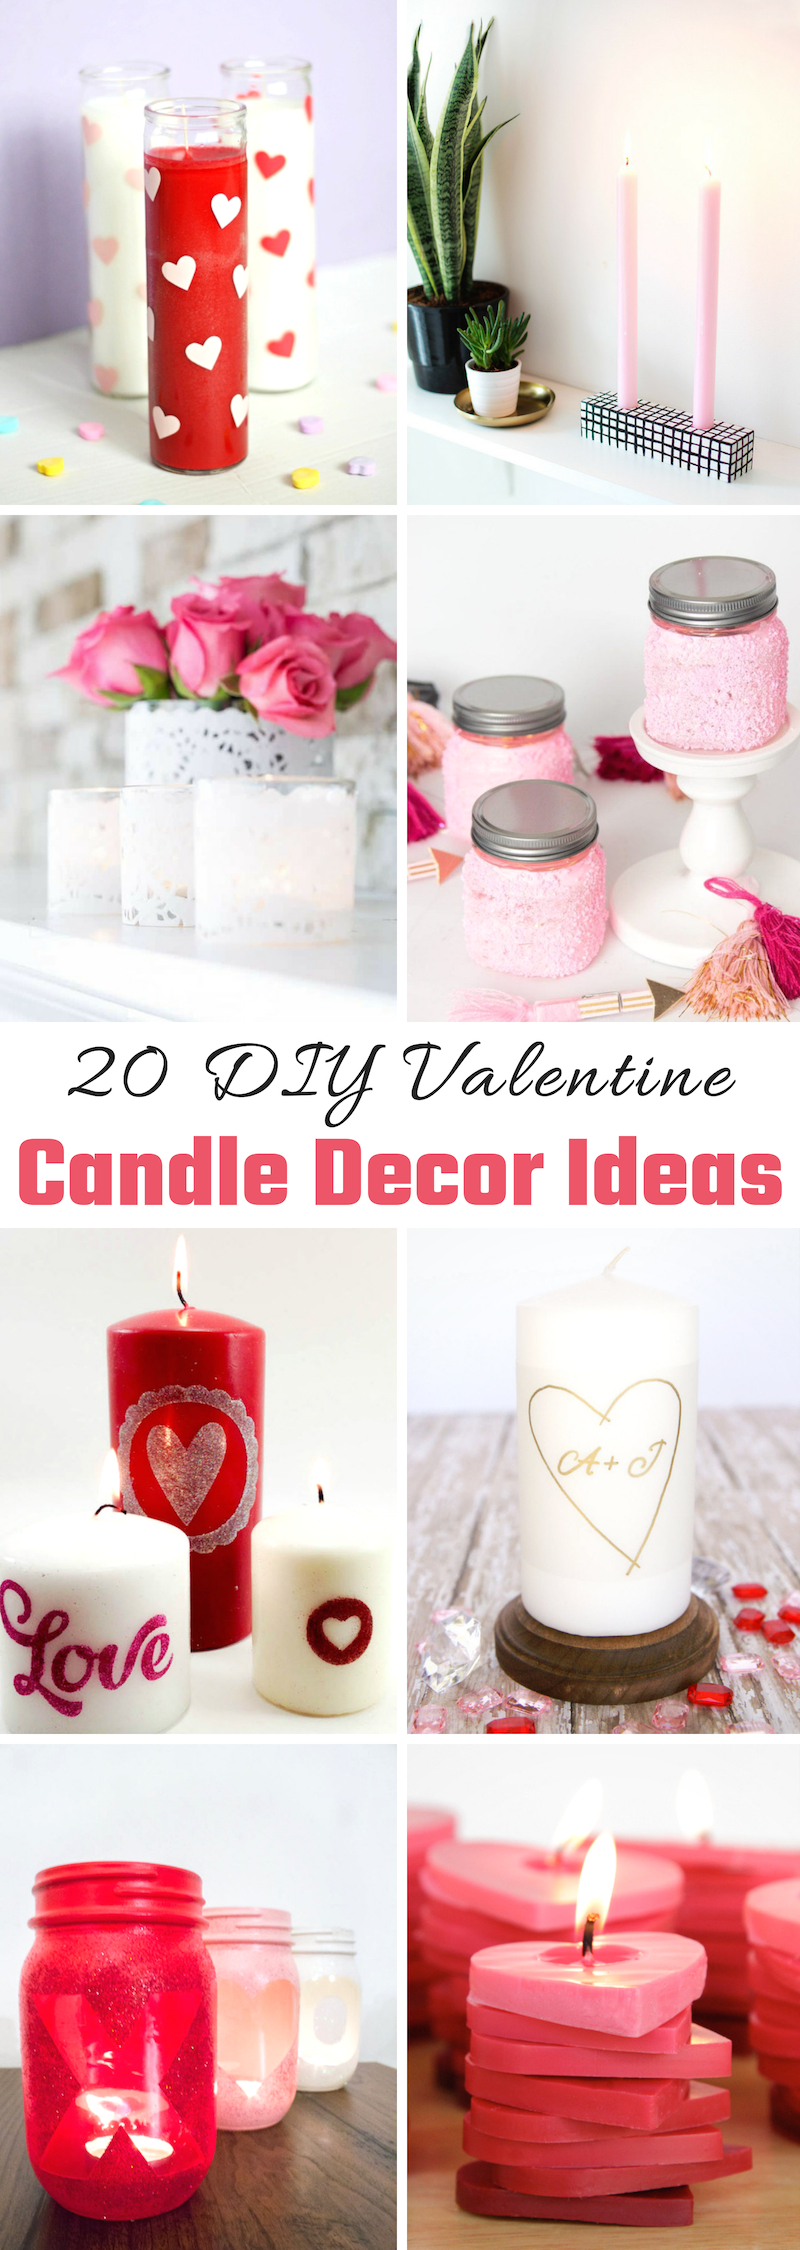 Valentine Candle Decor Ideas